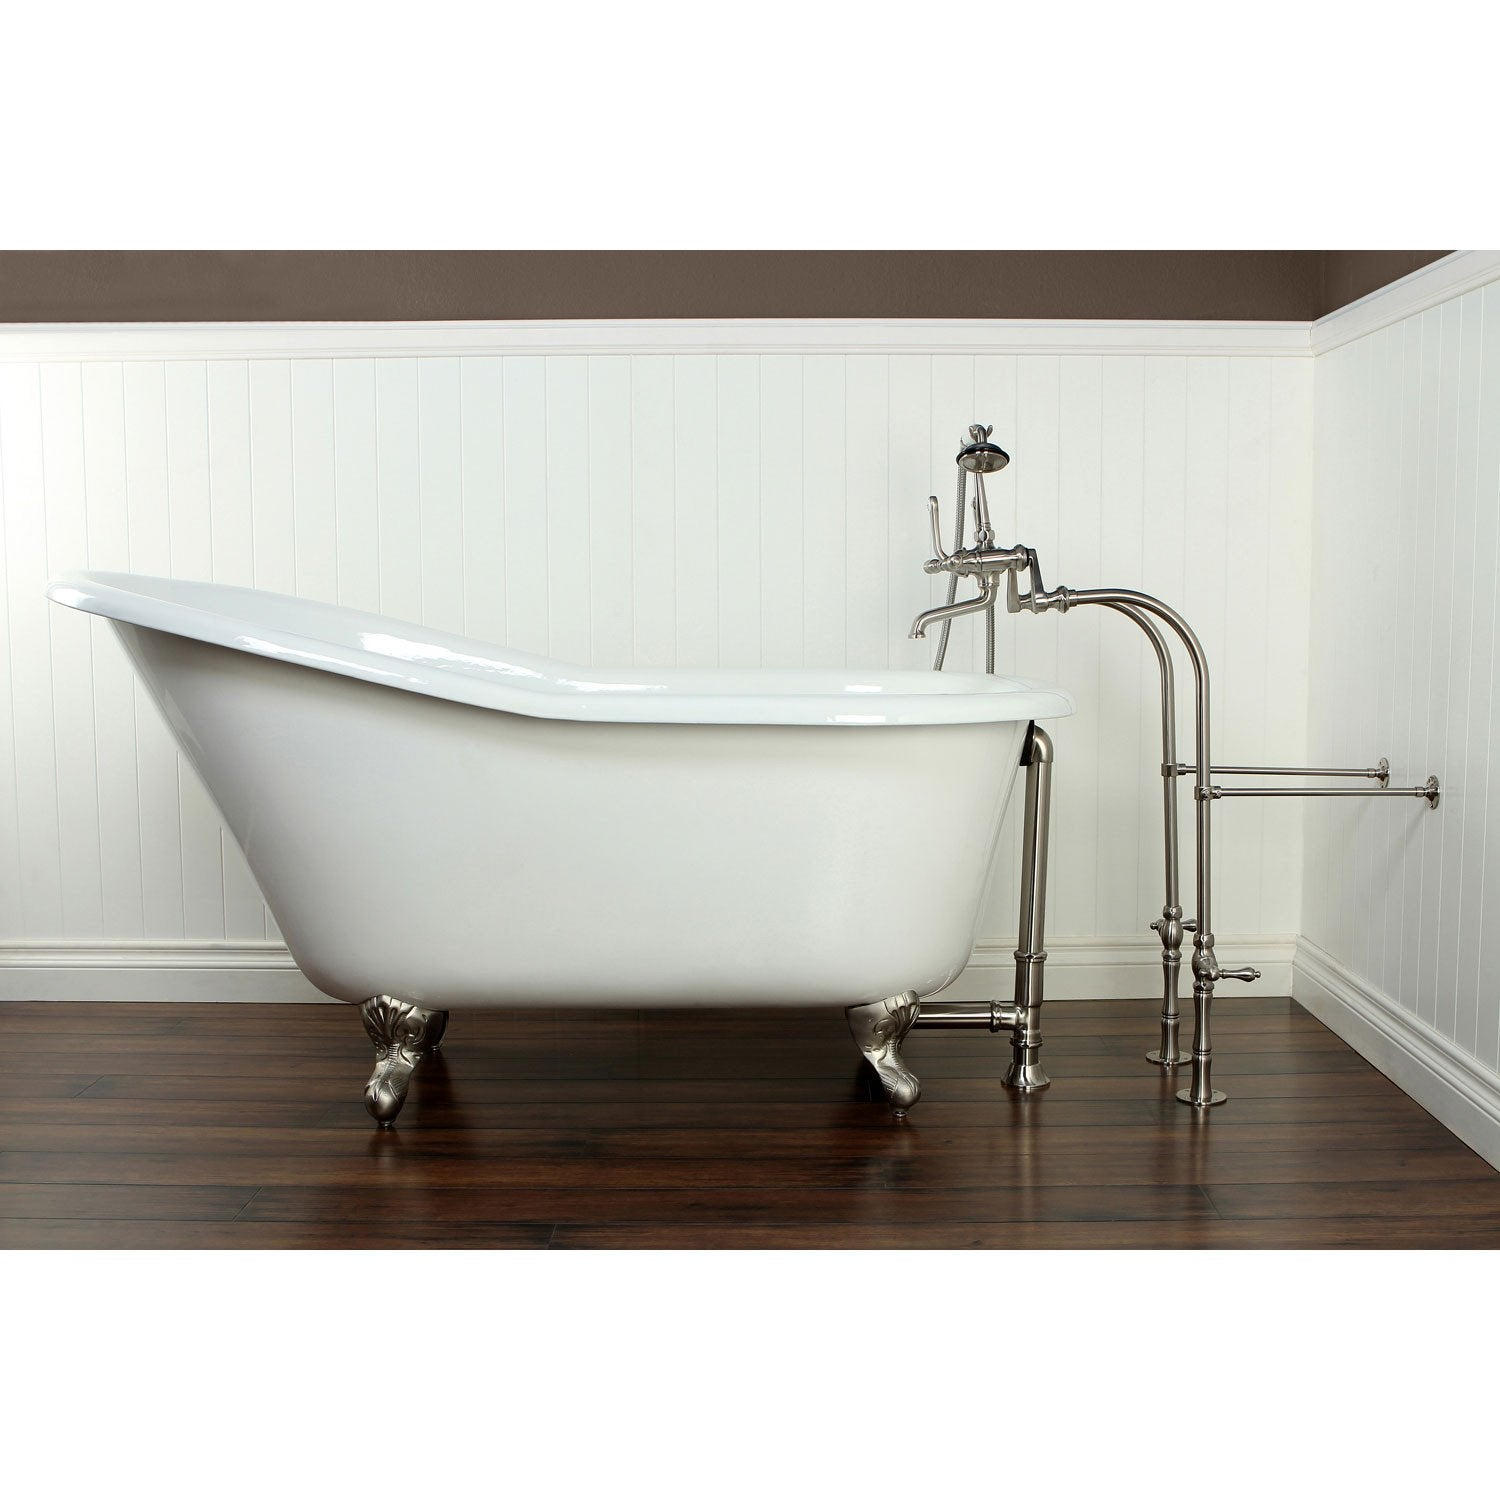 "60"" Clawfoot Tub w/ Floor Mount Satin Nickel Tub Faucet & Hardware Package CTP34"